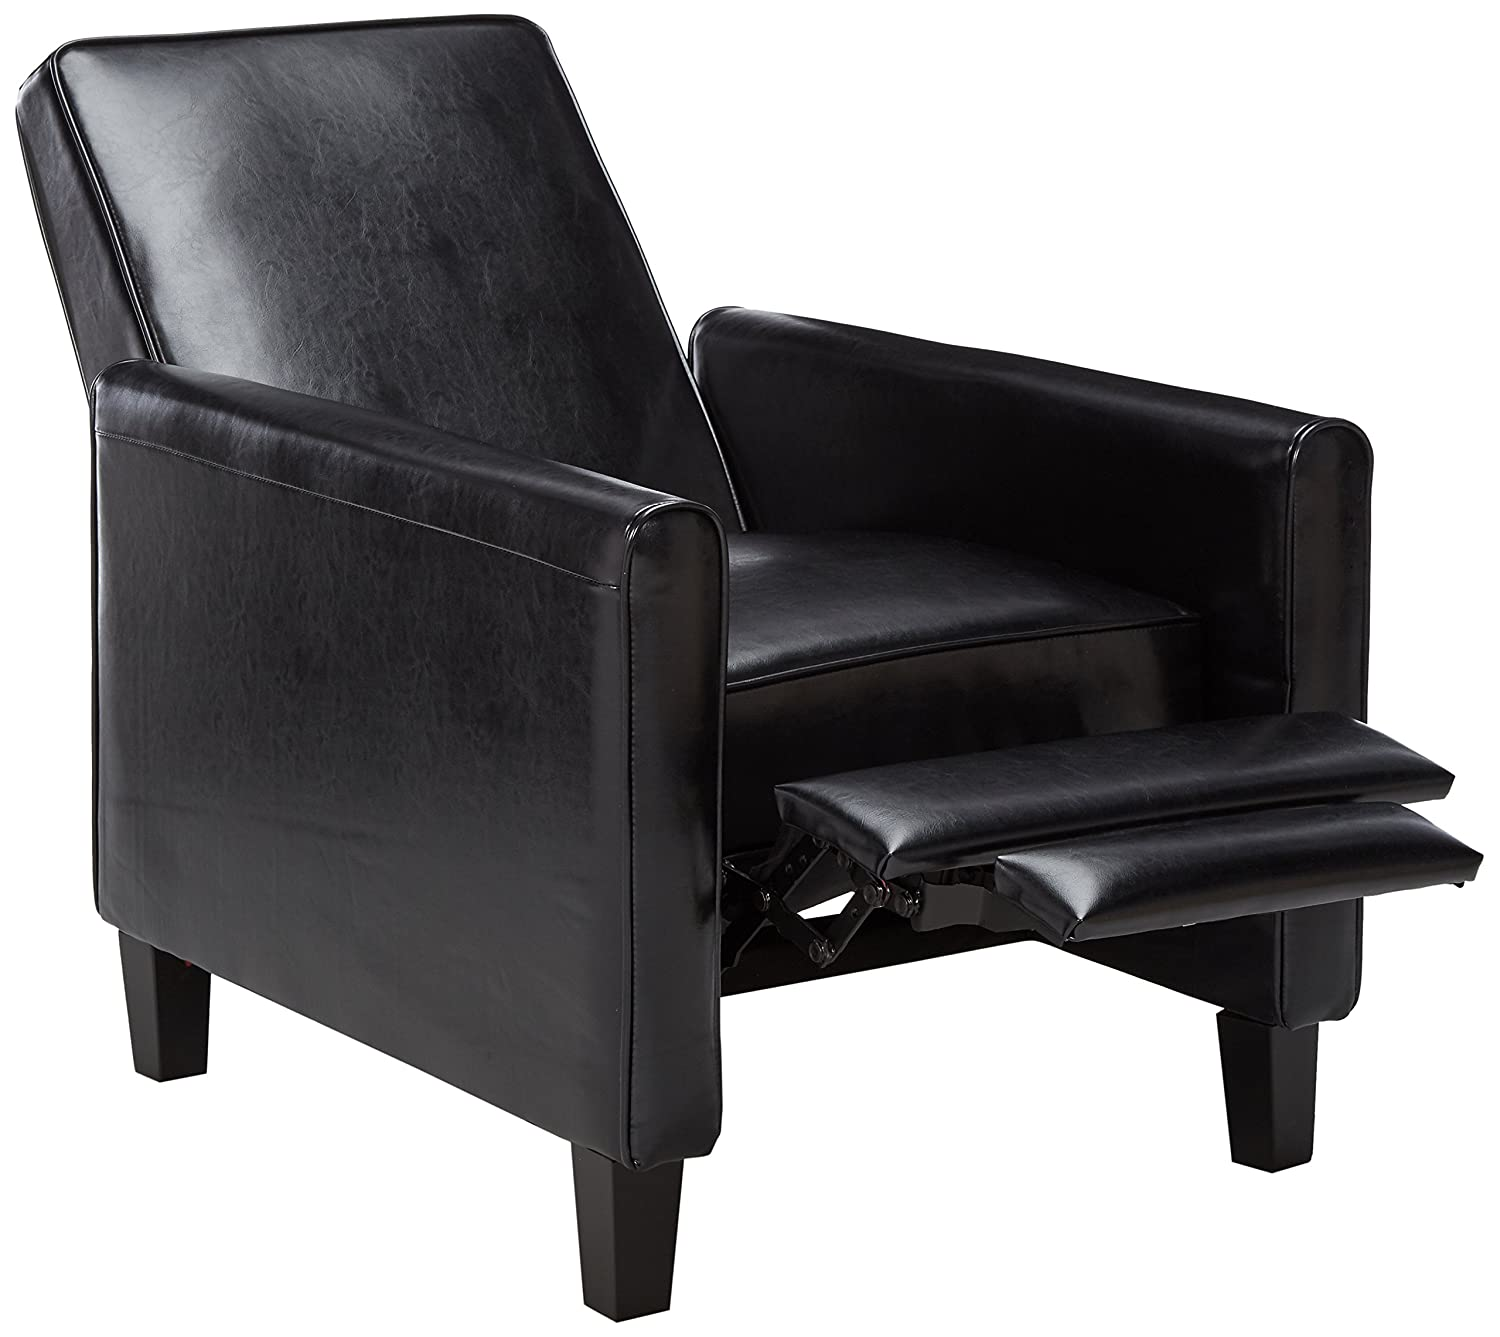 Amazon Best Selling Davis Leather Recliner Club Chair Black